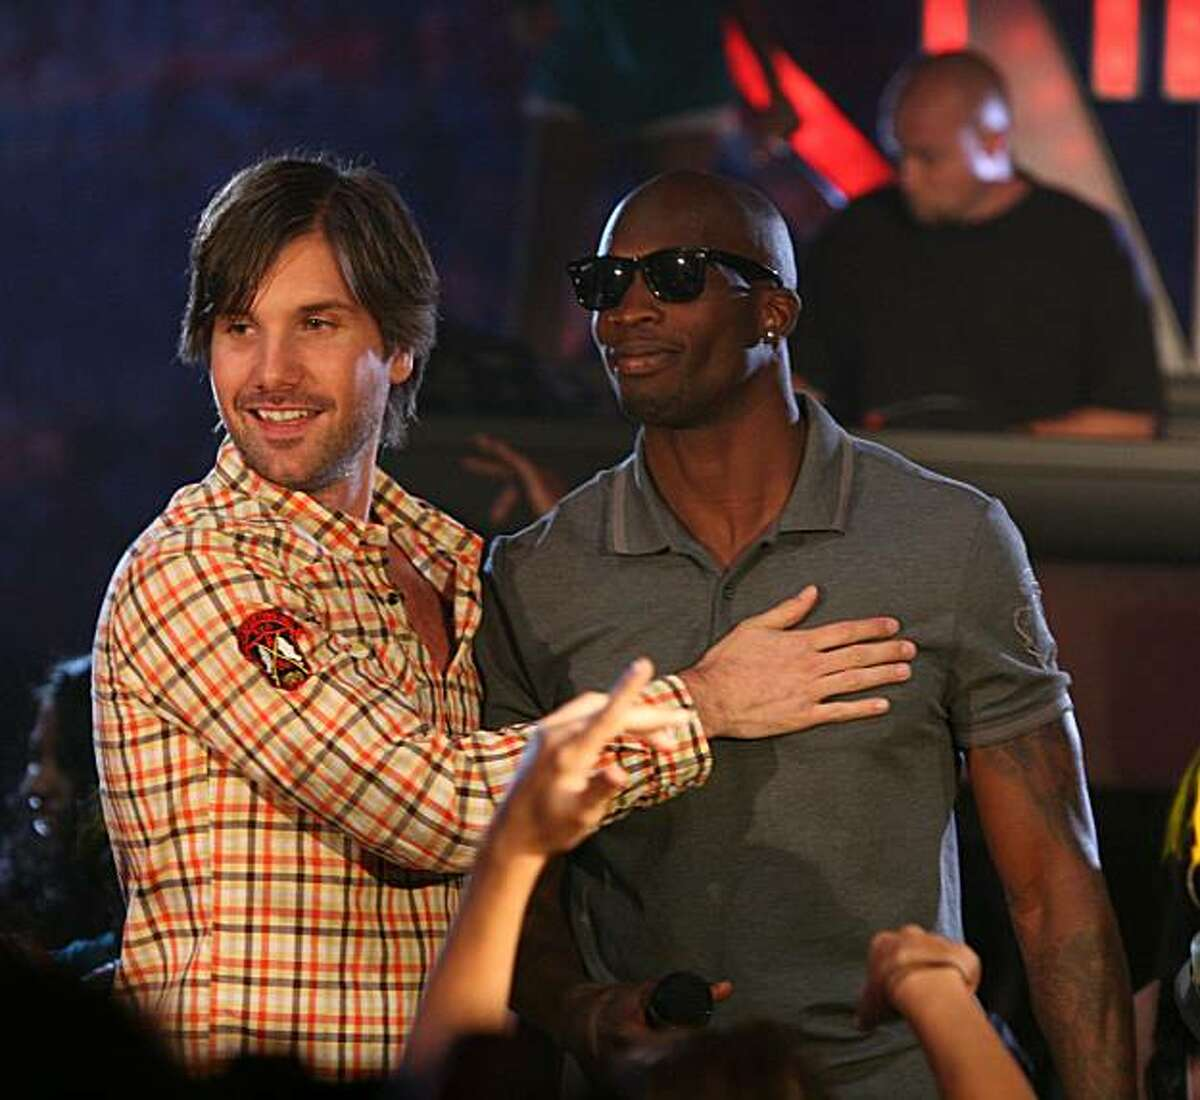 THE LEAGUE: L-R: Jon Lajoie and Chad Ochocinco on the season premiere of THE LEAGUE airing Thursday, September 16, 10:30 PM